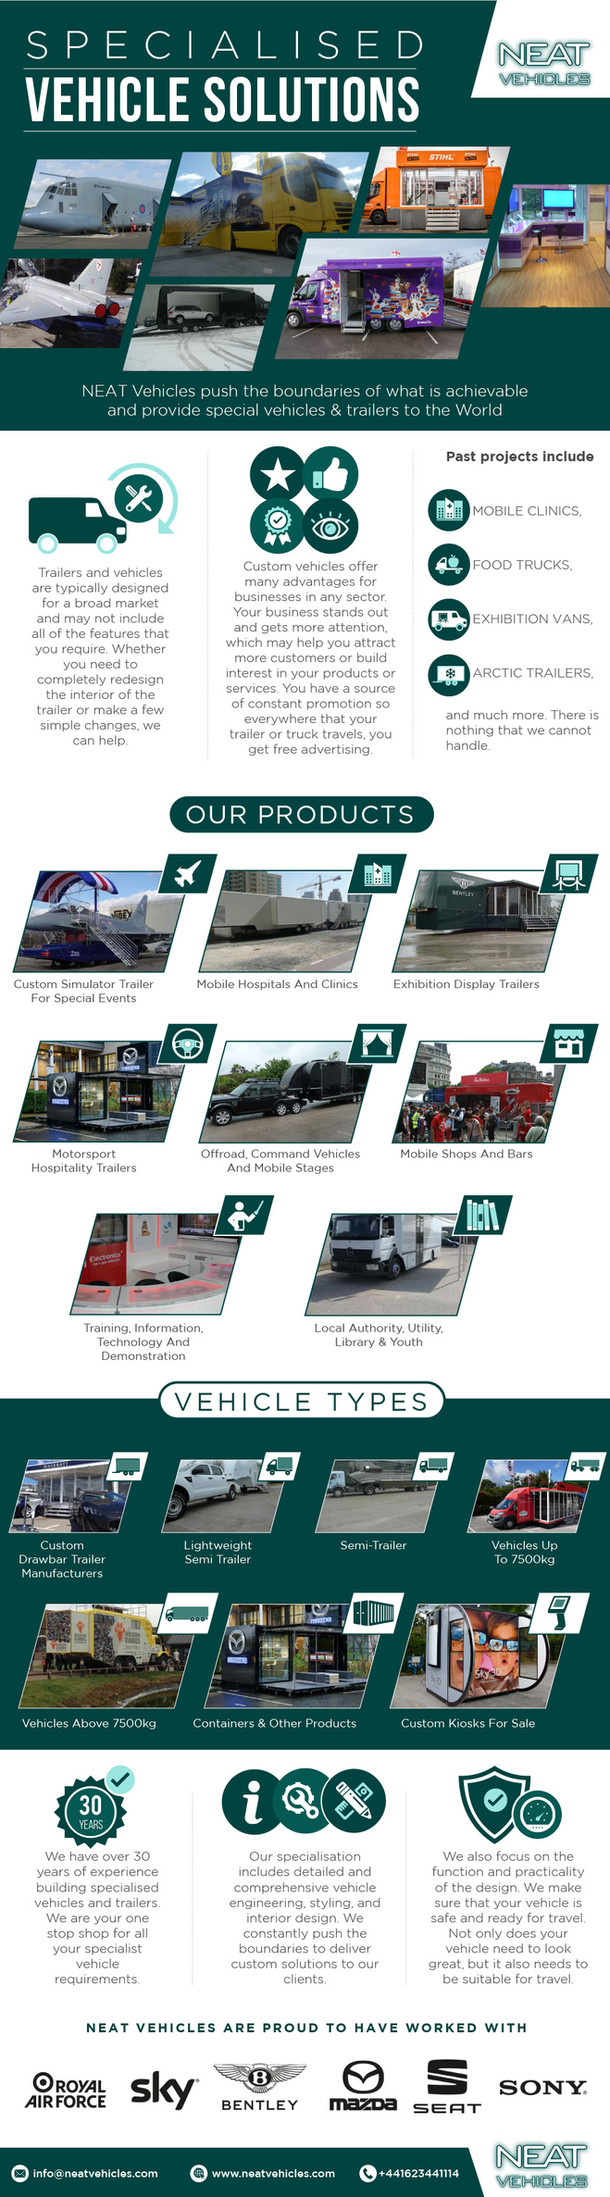 Specialized Vehicles Solutions